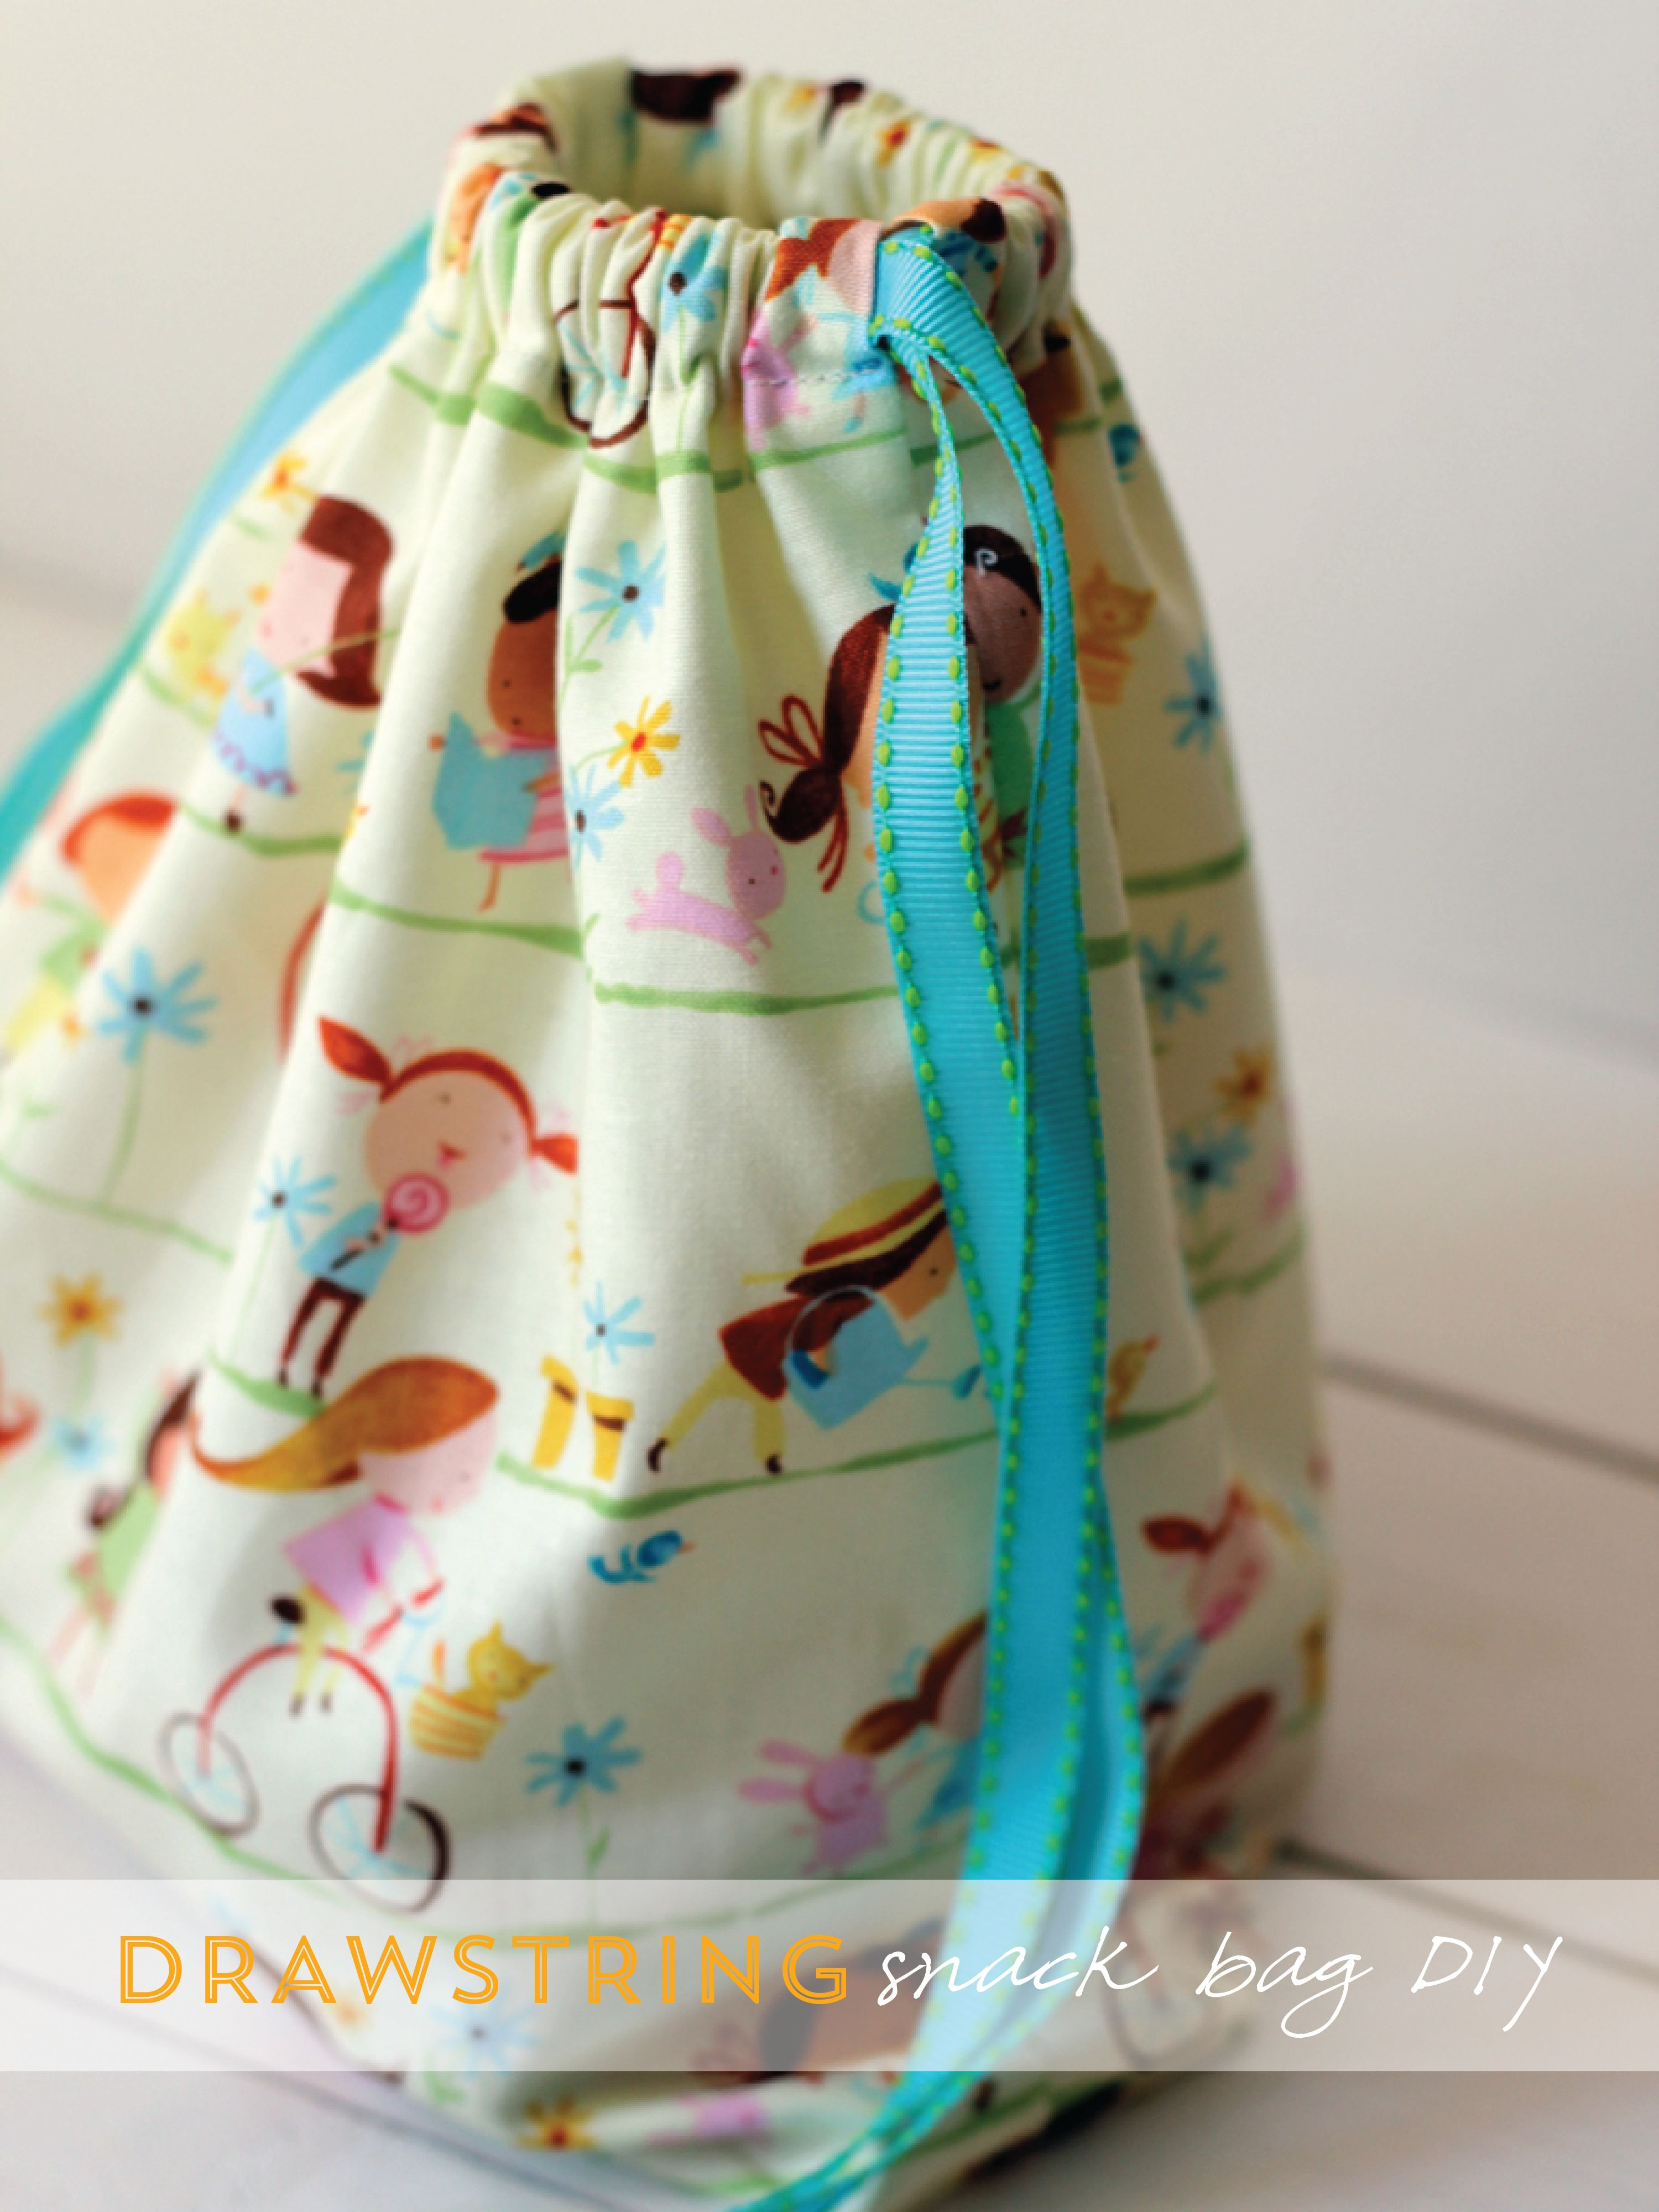 DIY Project - Drawstring Snack Bag | Bags, Christmas gifts and Mk ...